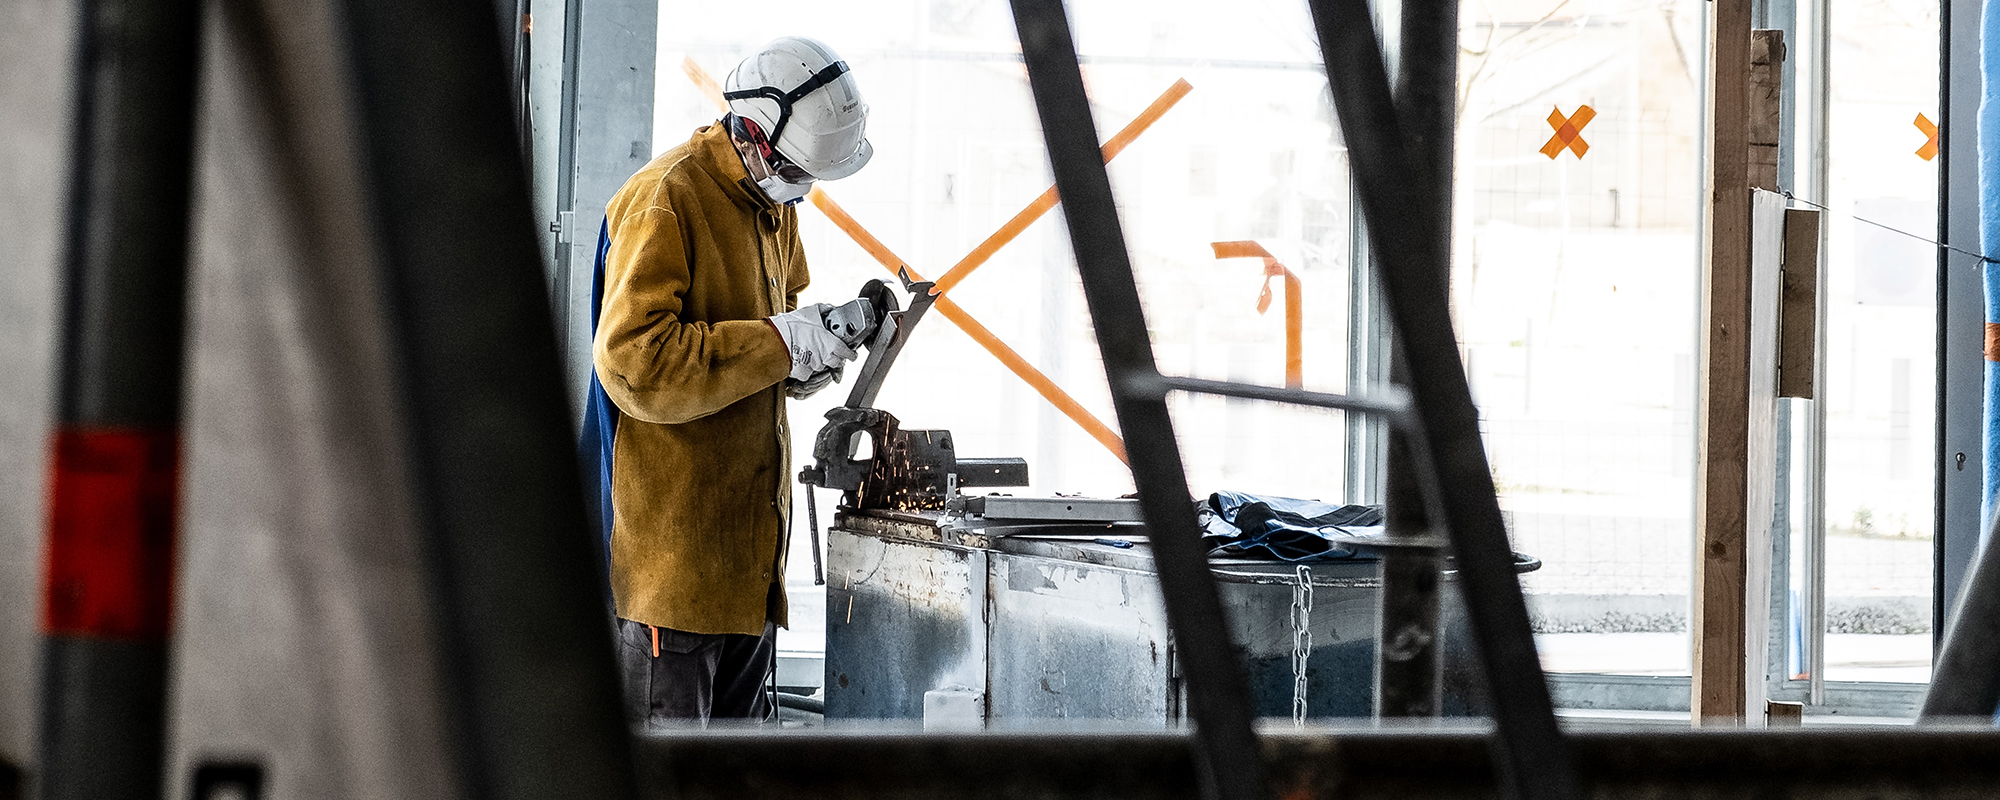 Industrial job worker wearing COVID mask and white hard hat in industrial setting while cutting metal